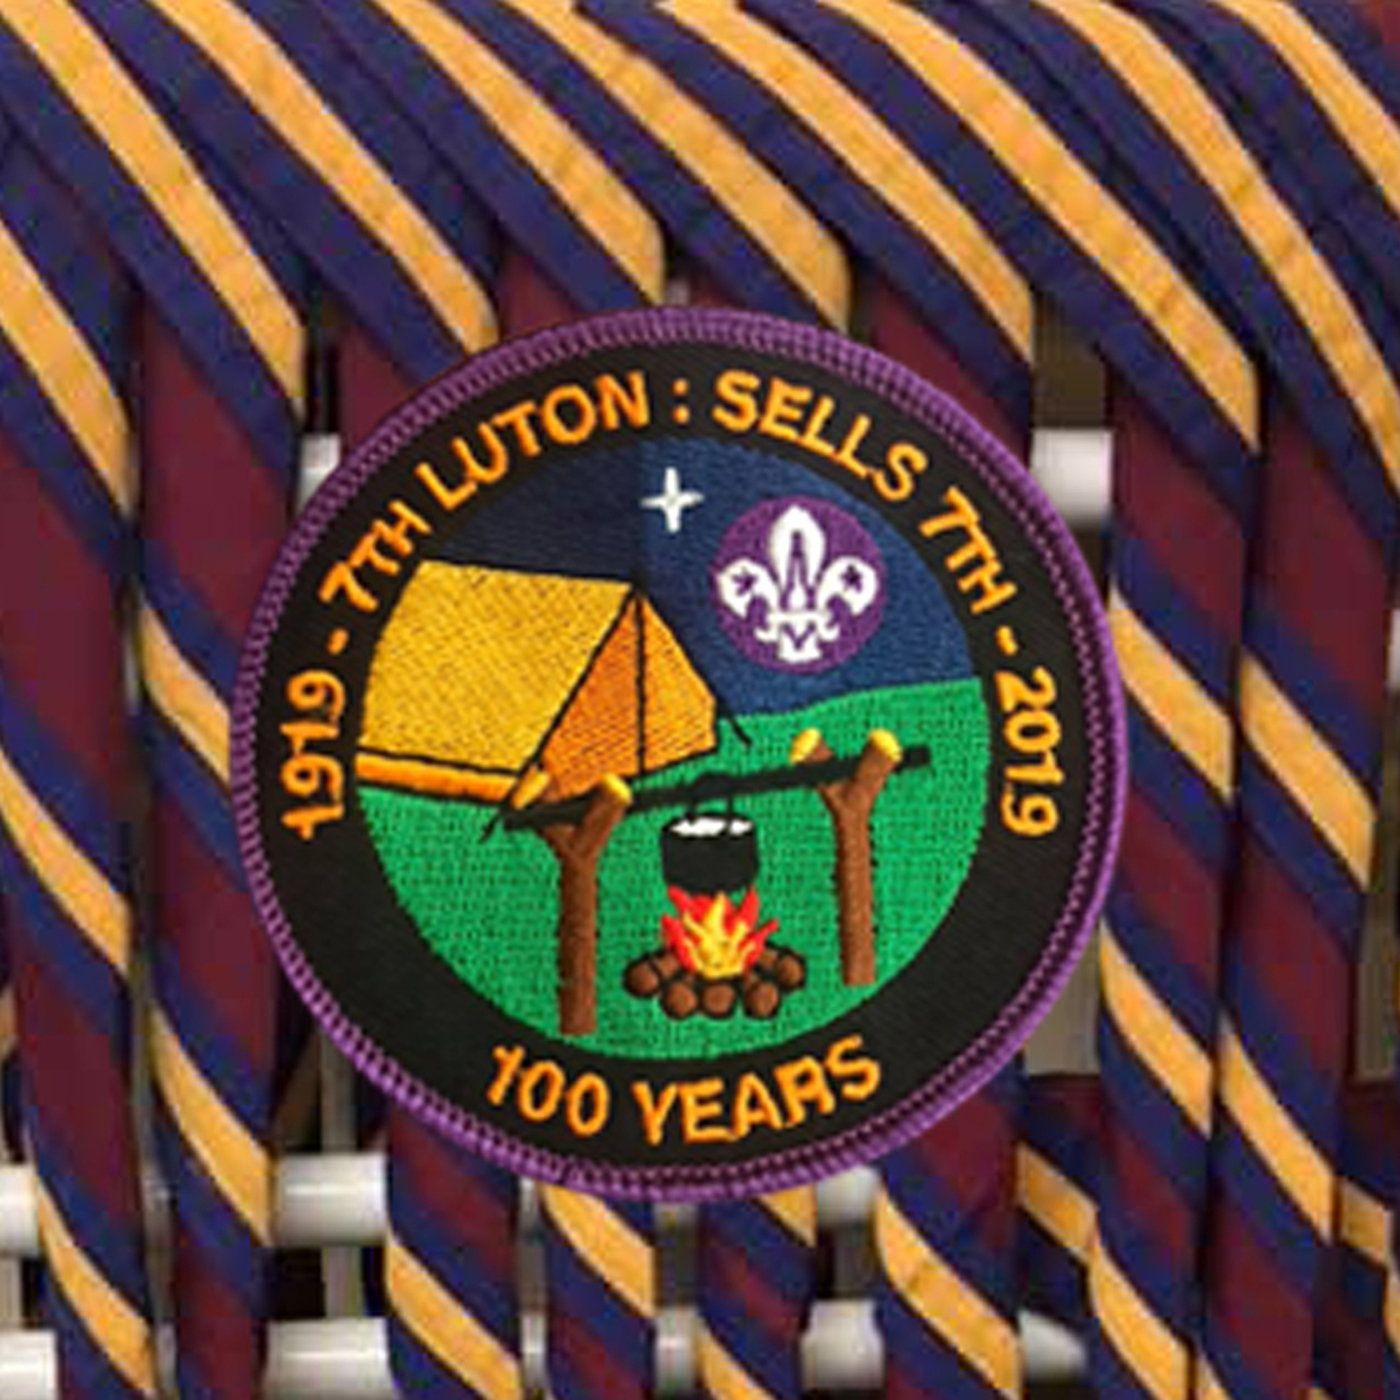 Sell 7th 100 Years of Scouting Celebration